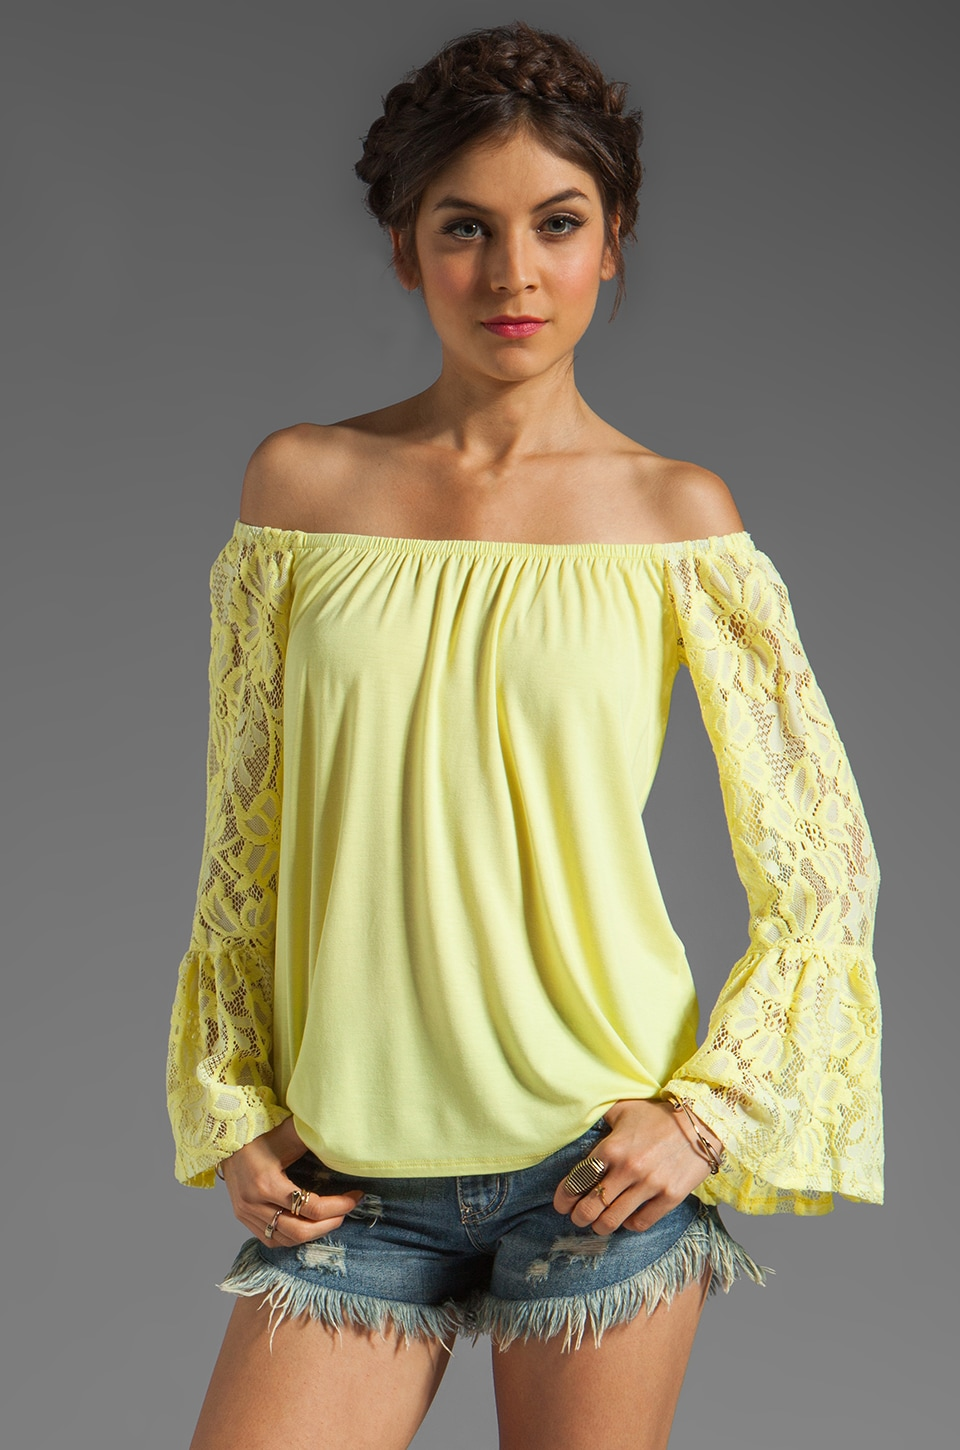 VAVA by Joy Han Skyler Off the Shoulder Top in Yellow